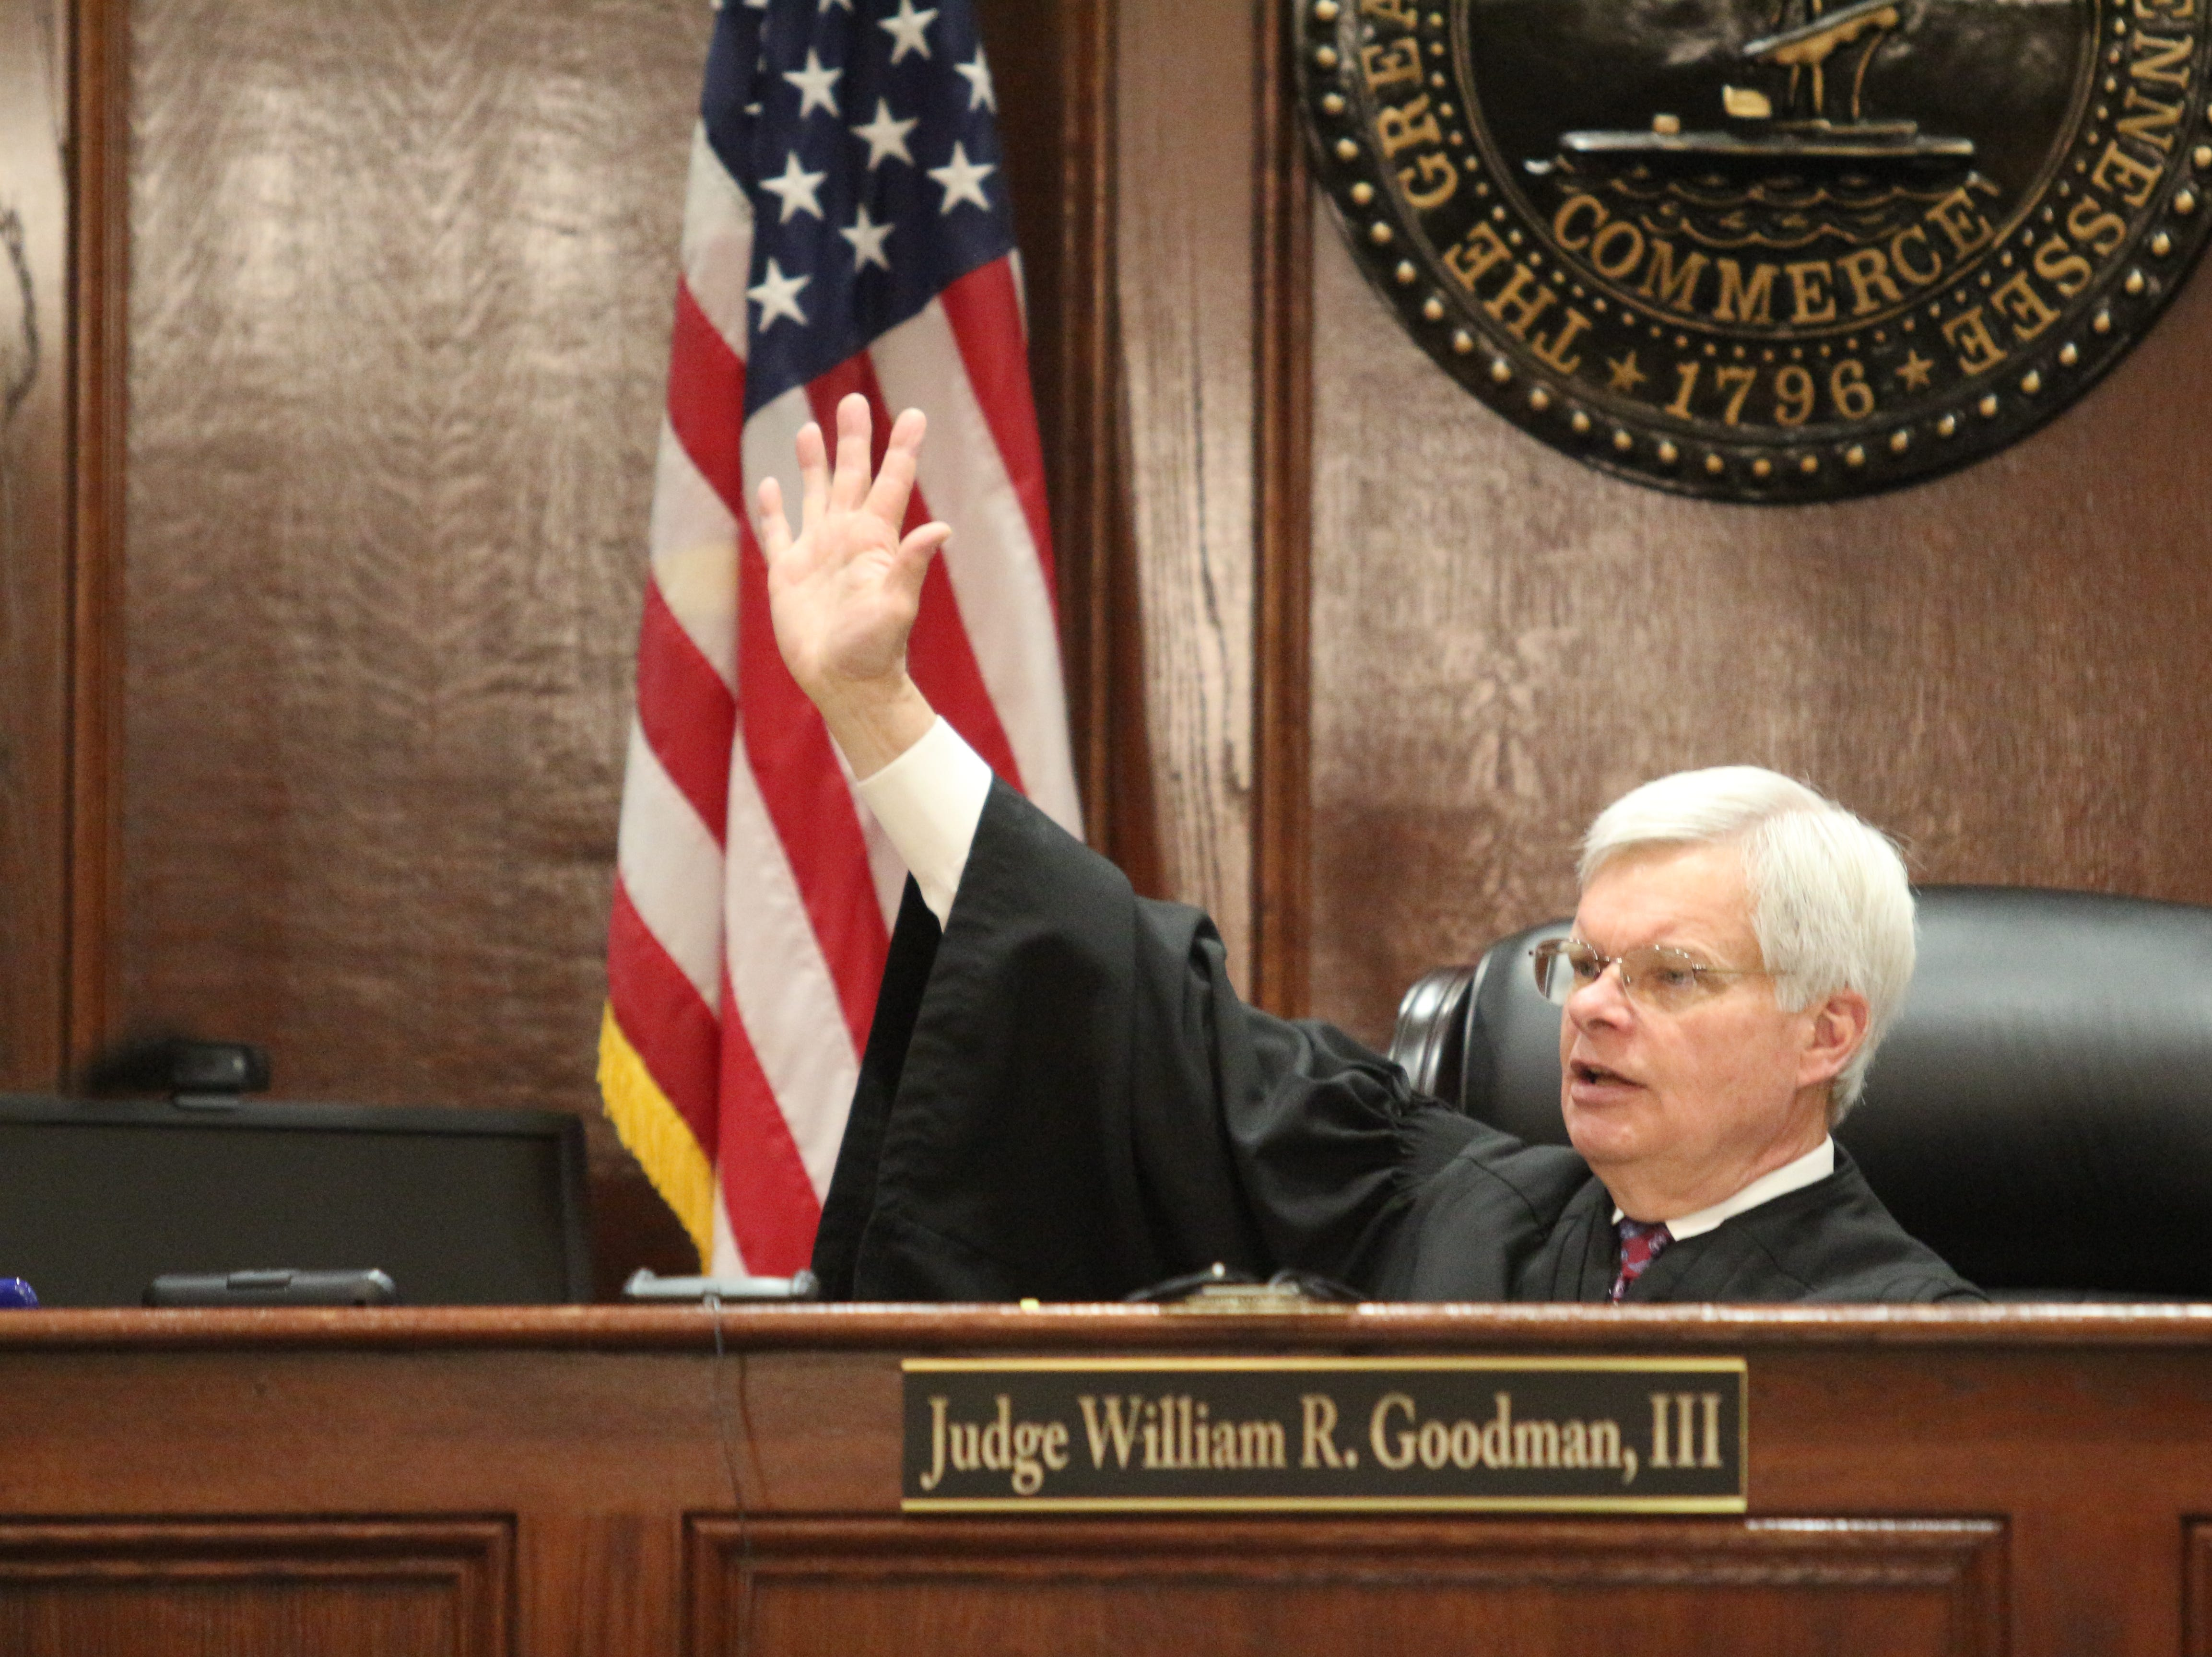 Circuit Court Judge William Goodman III asks the jury to raise their hands to verify they have not talked about or researched the case overnight before trial resumes Wednesday in the case of Samson Peltier who opened fire on another vehicle after a fender bender in 2015.